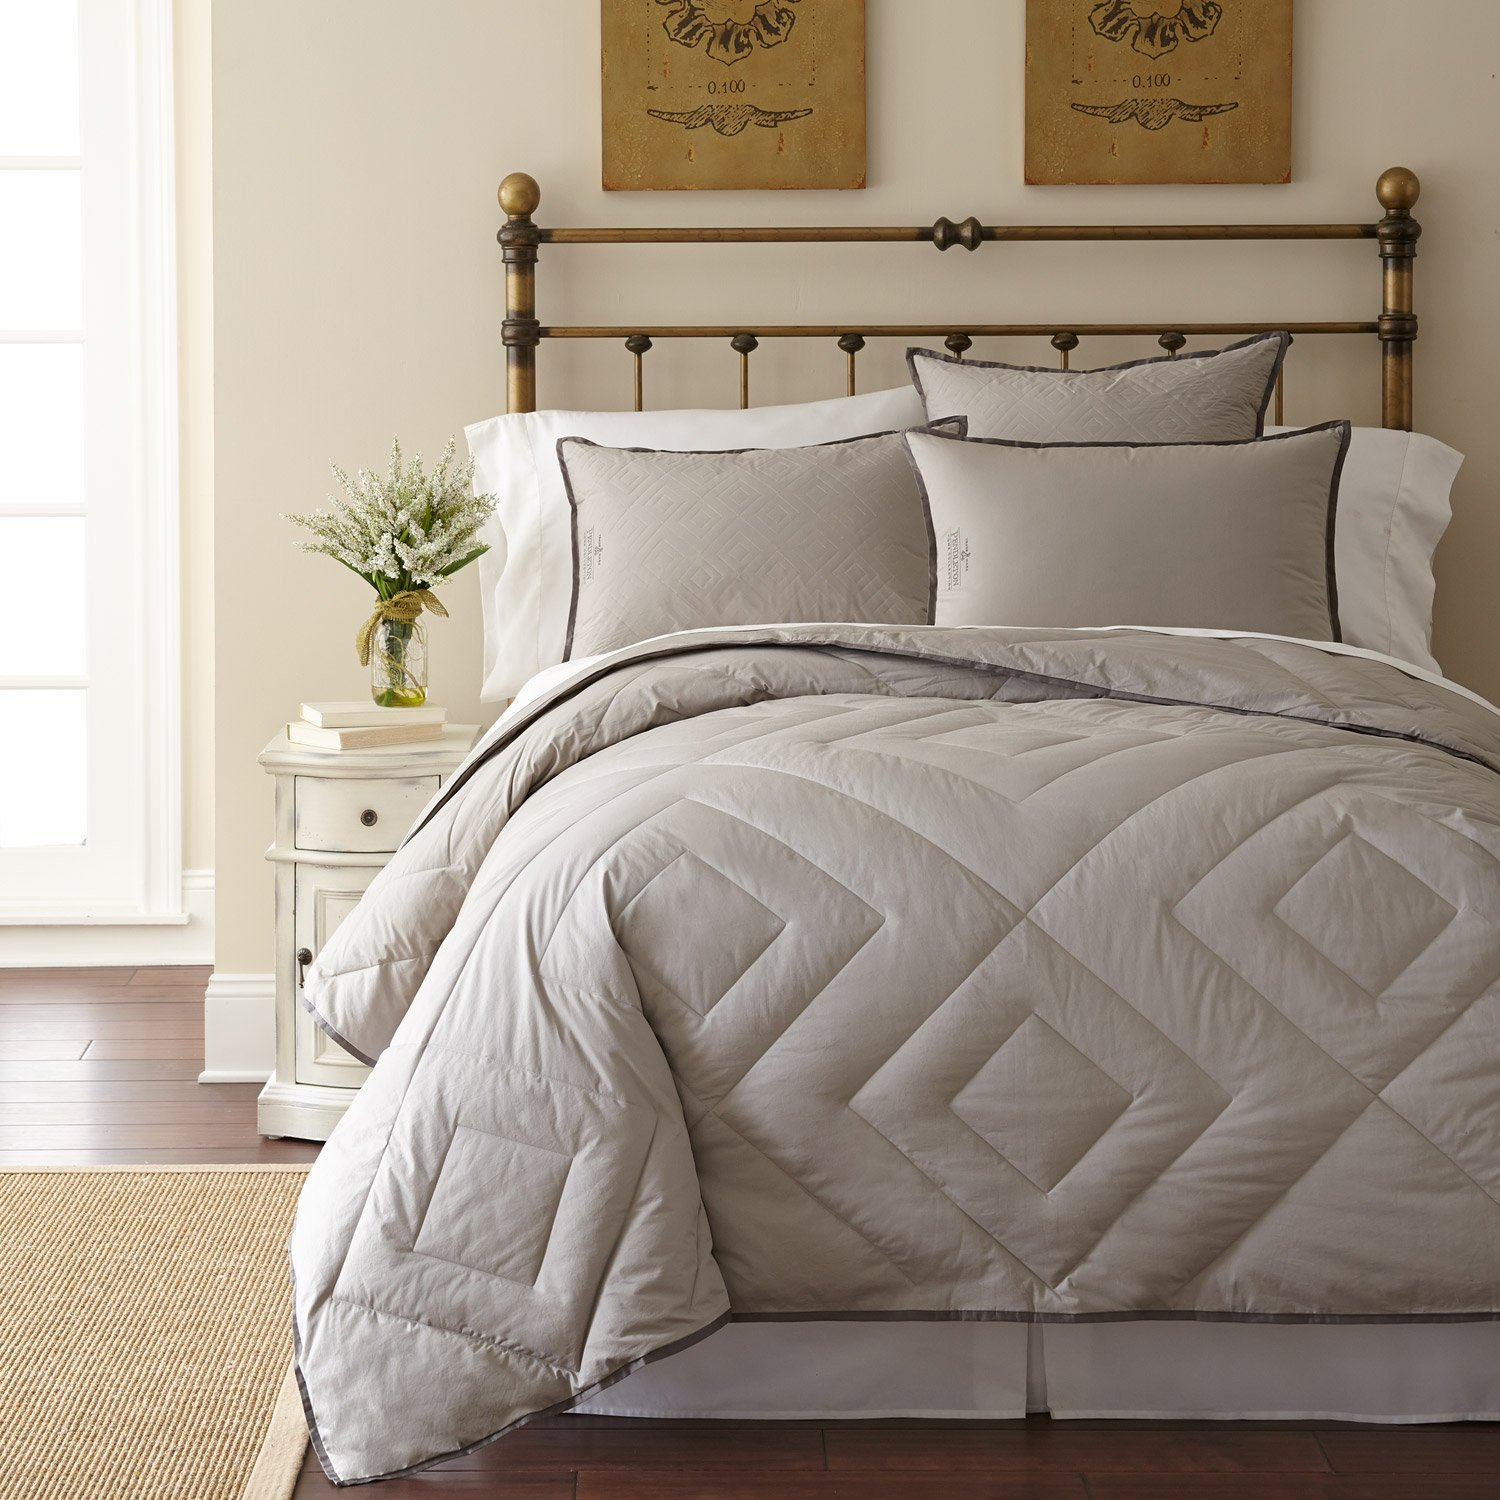 Luxury PrimaLoft Down Alternative Vintage Wash Grey Comforter – Diamond Pattern